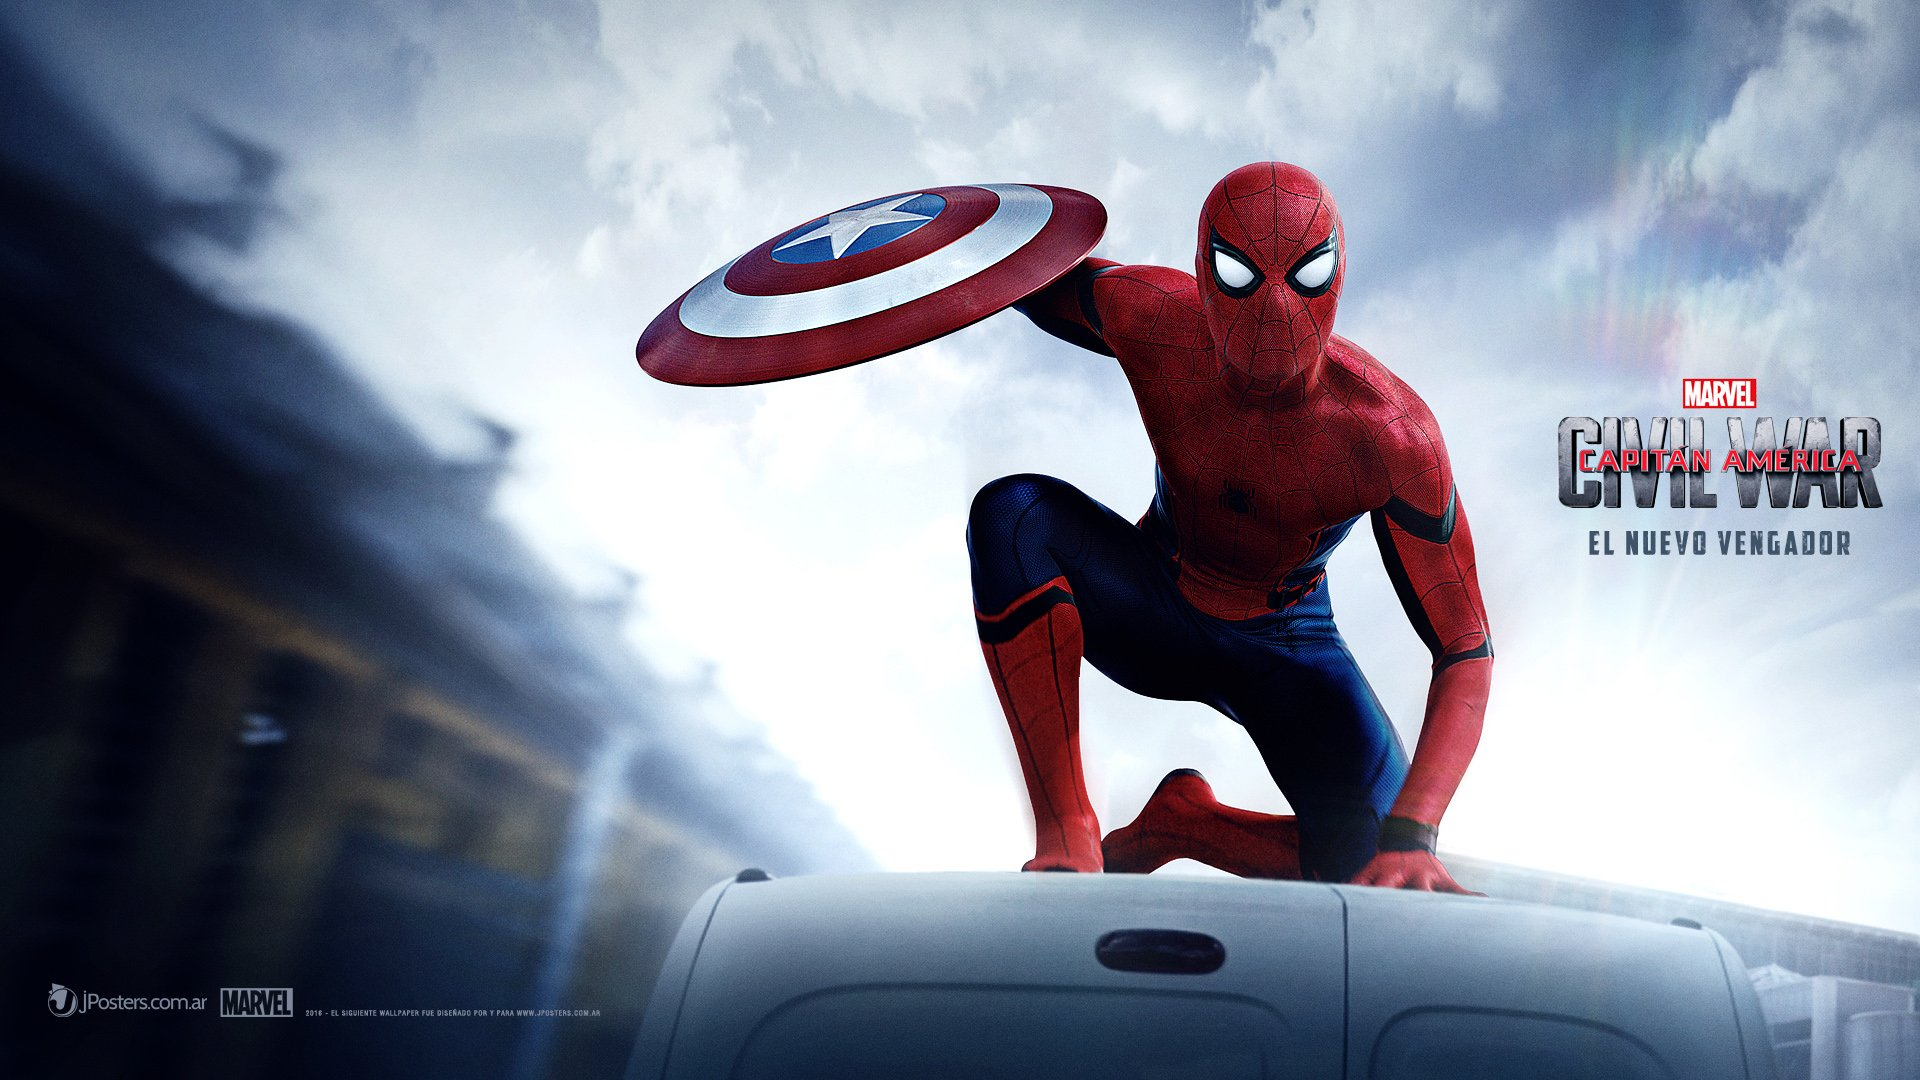 Hd wallpaper of captain america - Hd Wallpaper Background Id 698429 1920x1080 Movie Captain America